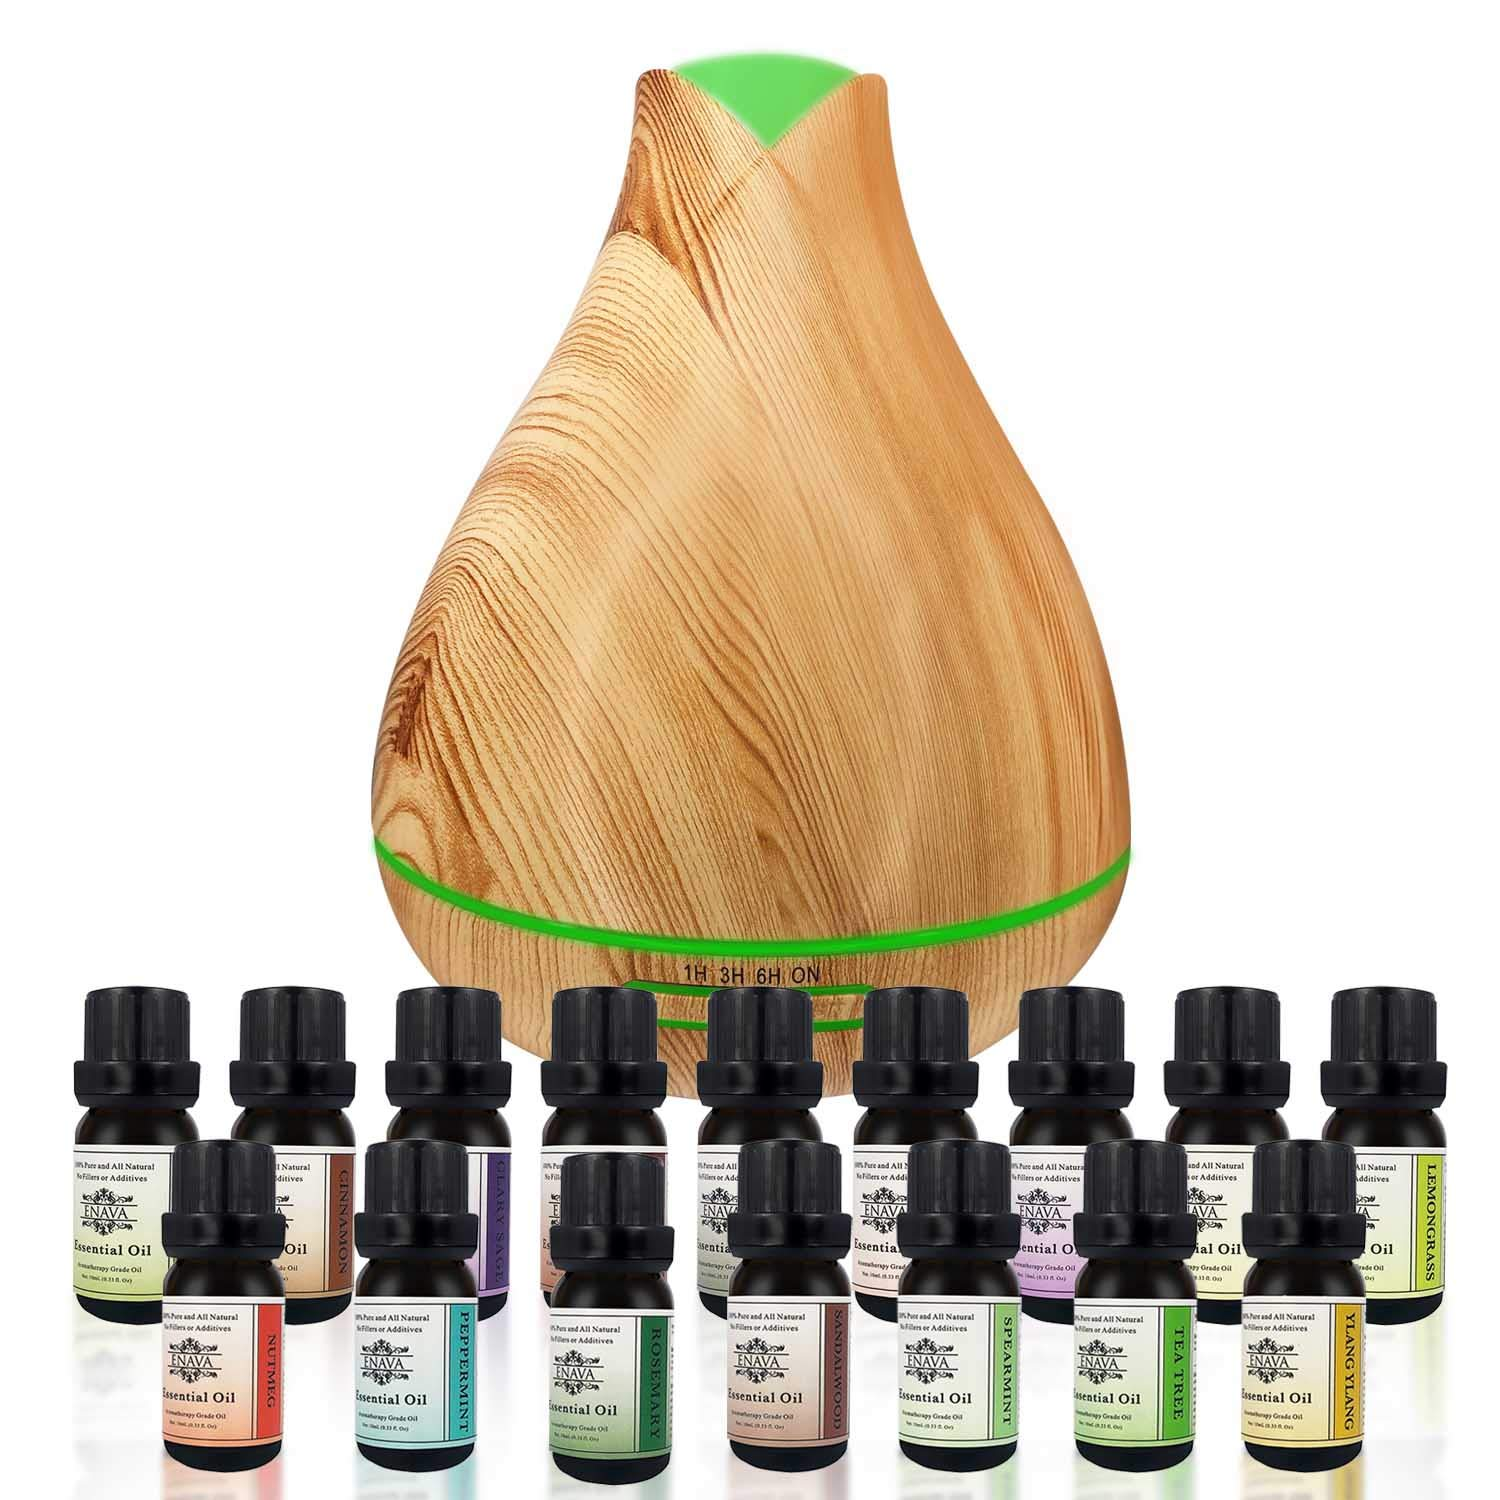 Enava Essential Oil Diffuser Aromatherapy Humidifier Gift Set - Extreme Cool Mist Output -350ml Top 16 Oils-Eucalyptus Lavender - Waterless Auto Shut-Off 7 color LED - Therapeutic Grade Aroma Oils